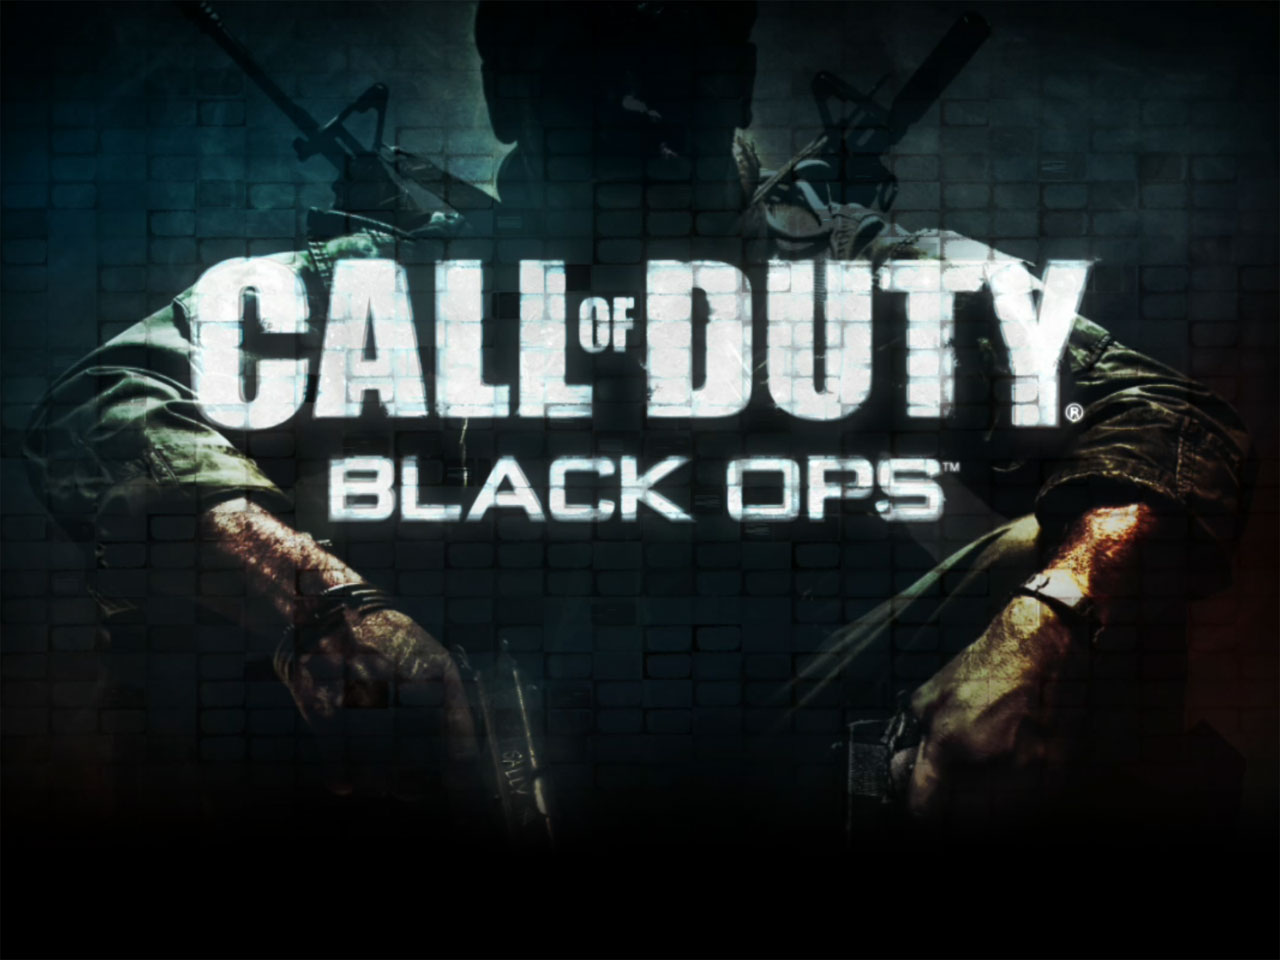 free wallpapers 2 2013 Photoshoot Black Ops Black Ops hd 2013 2 1280x960